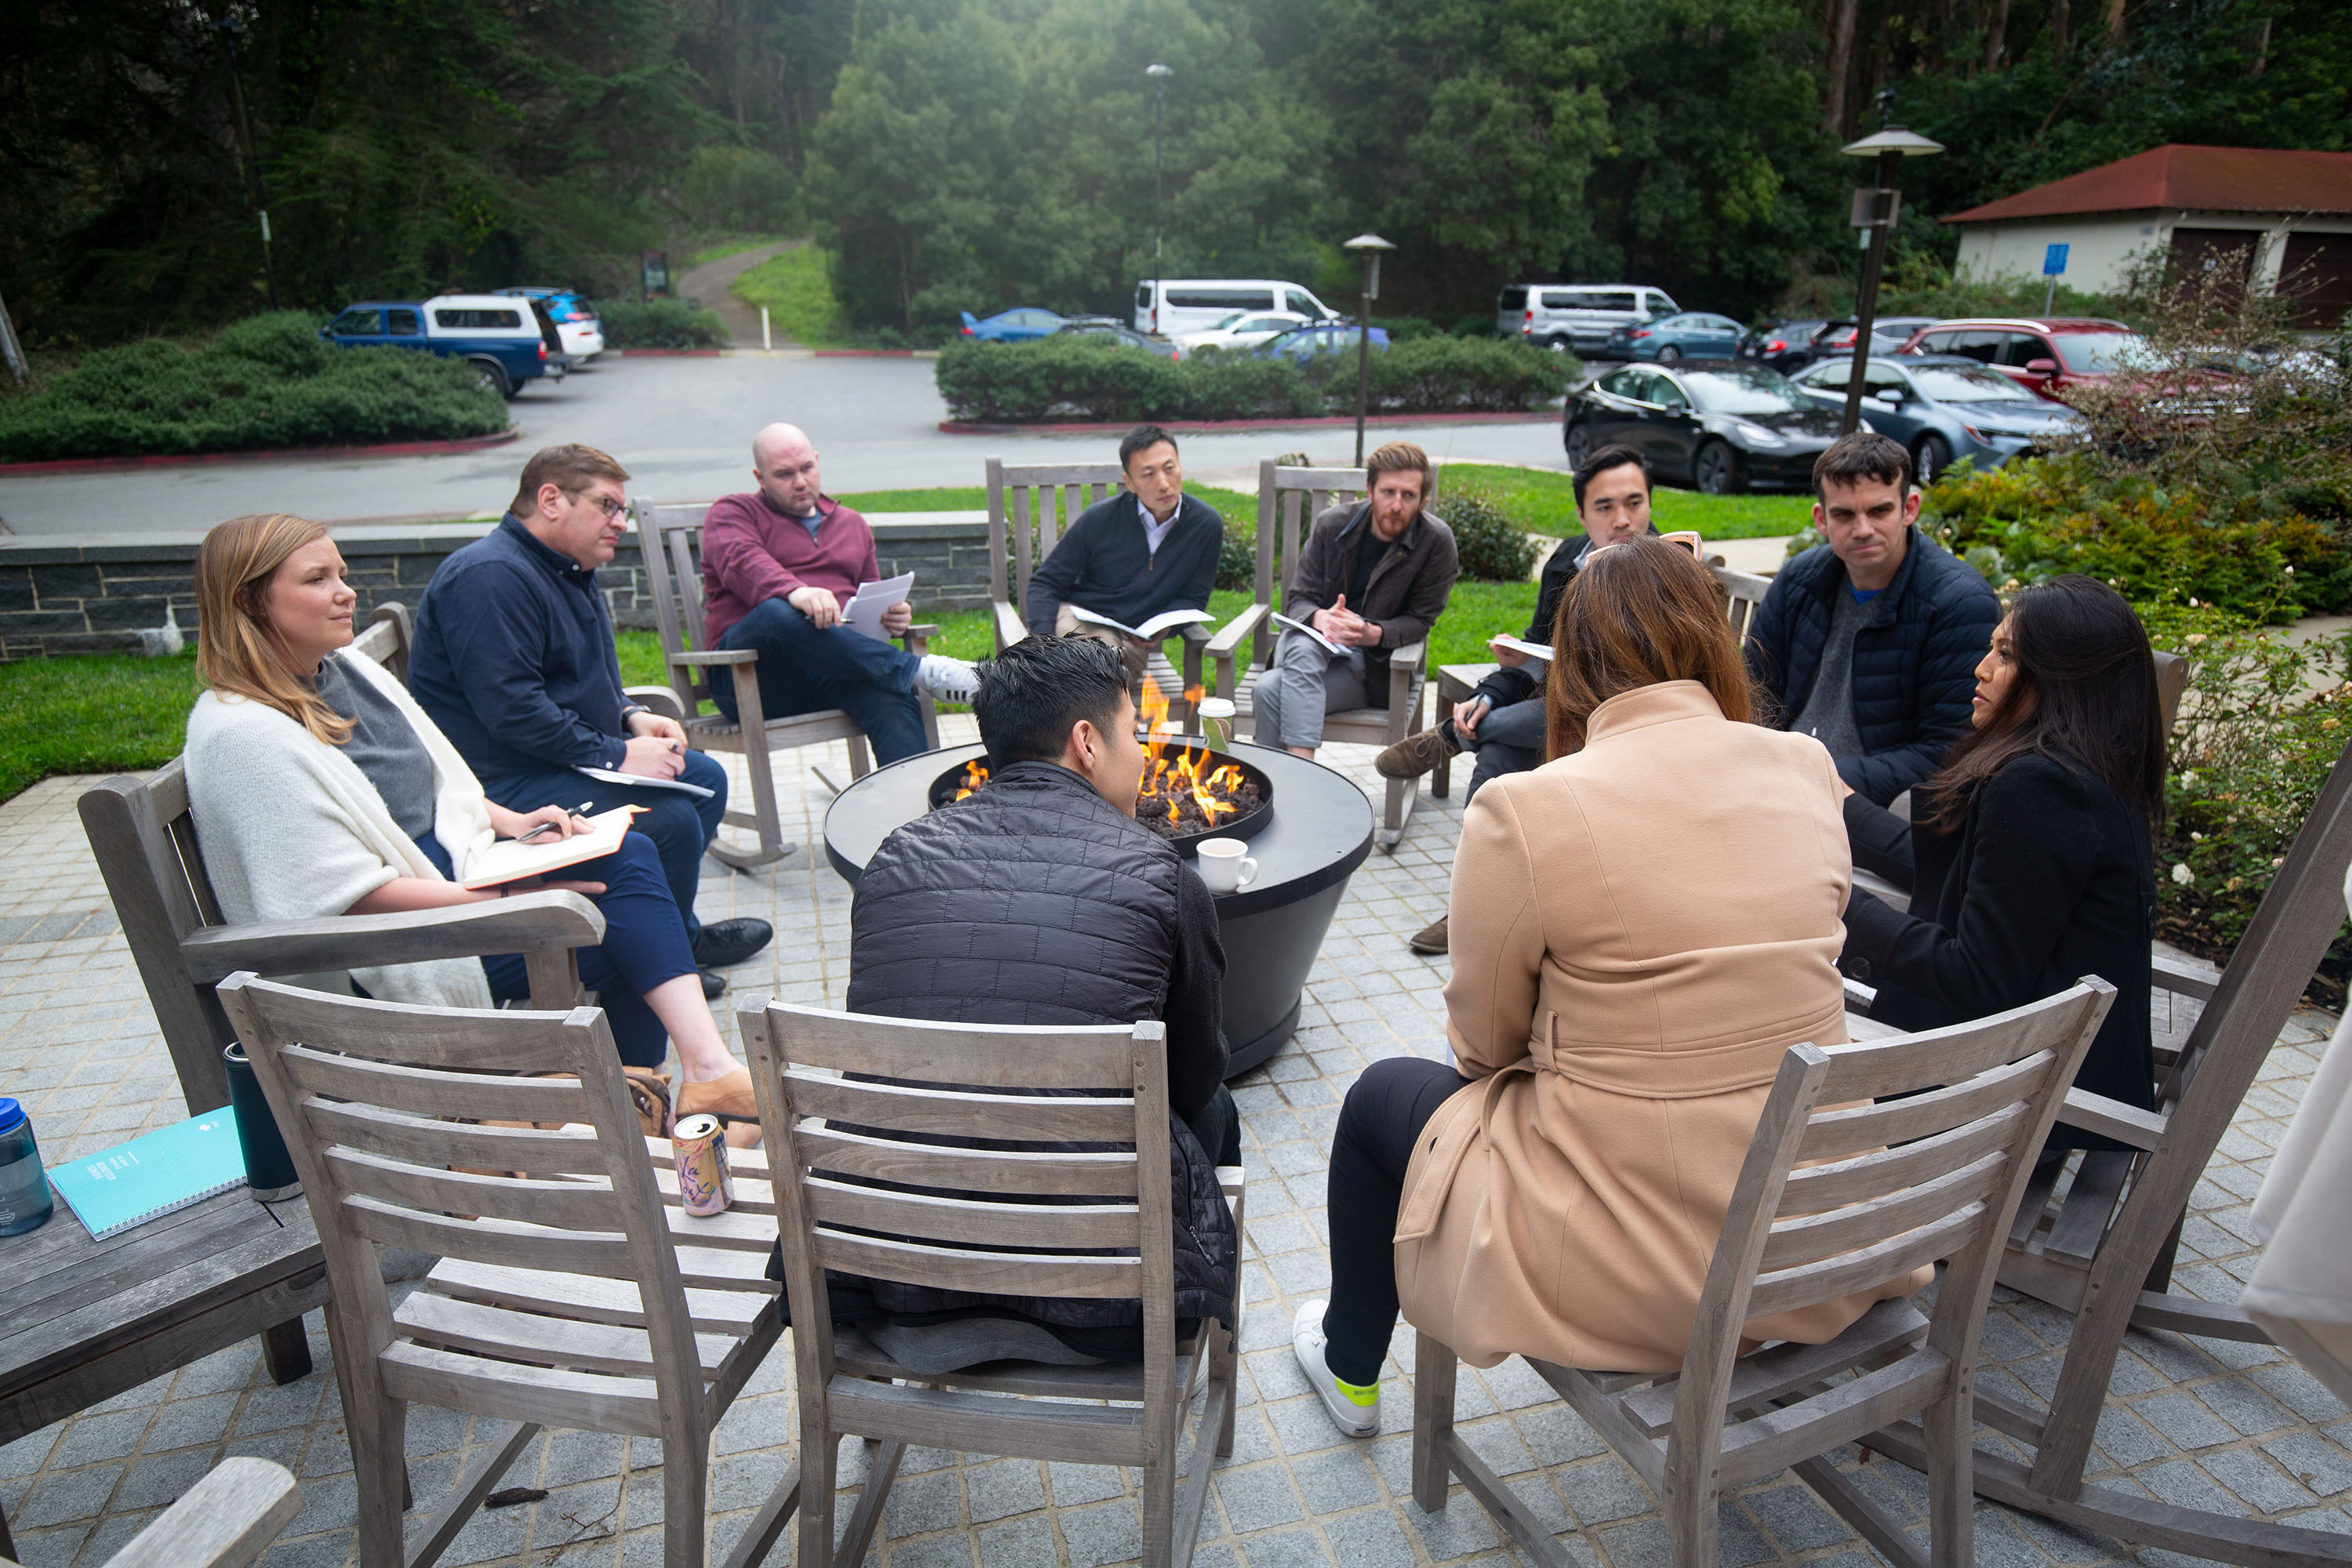 A group of Praxis fellows engaged in discussion seated in a circle around a fire pit.